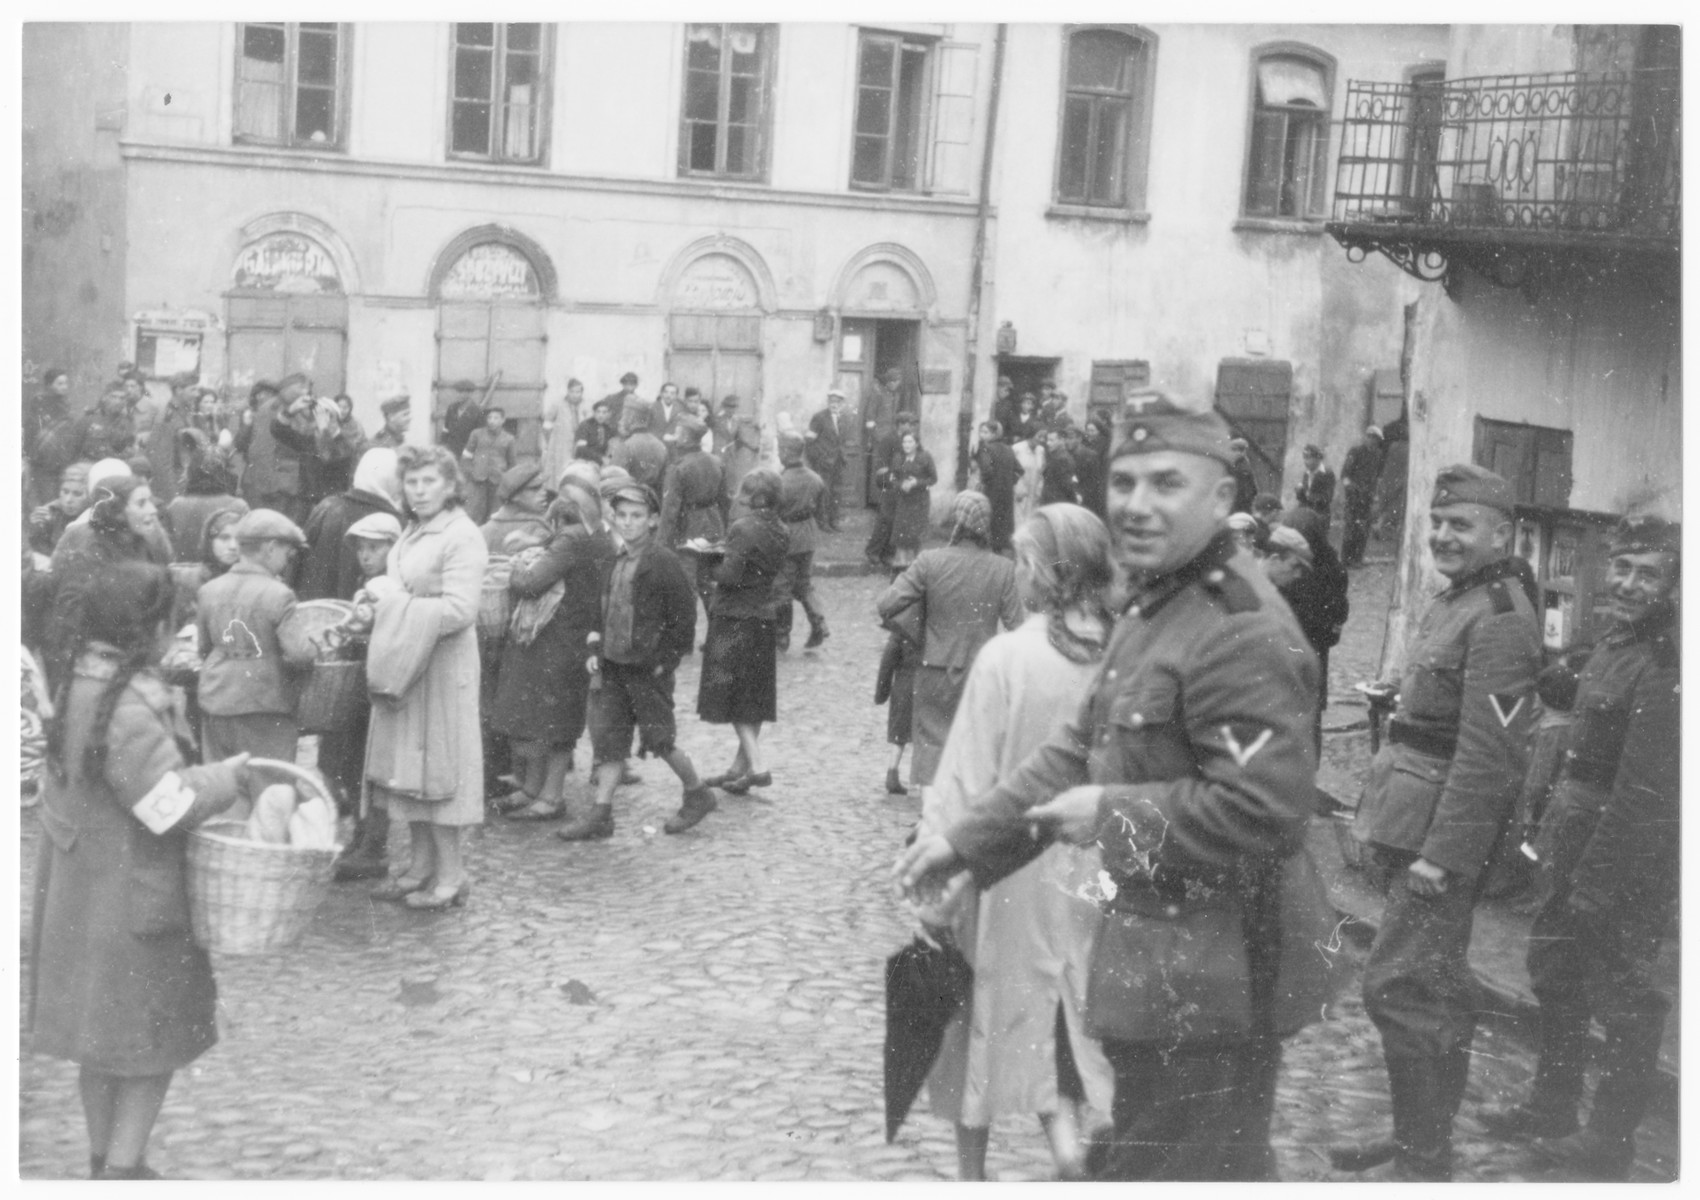 German soldiers watch Jewish women shop at the outdoor market of the Lublin ghetto.